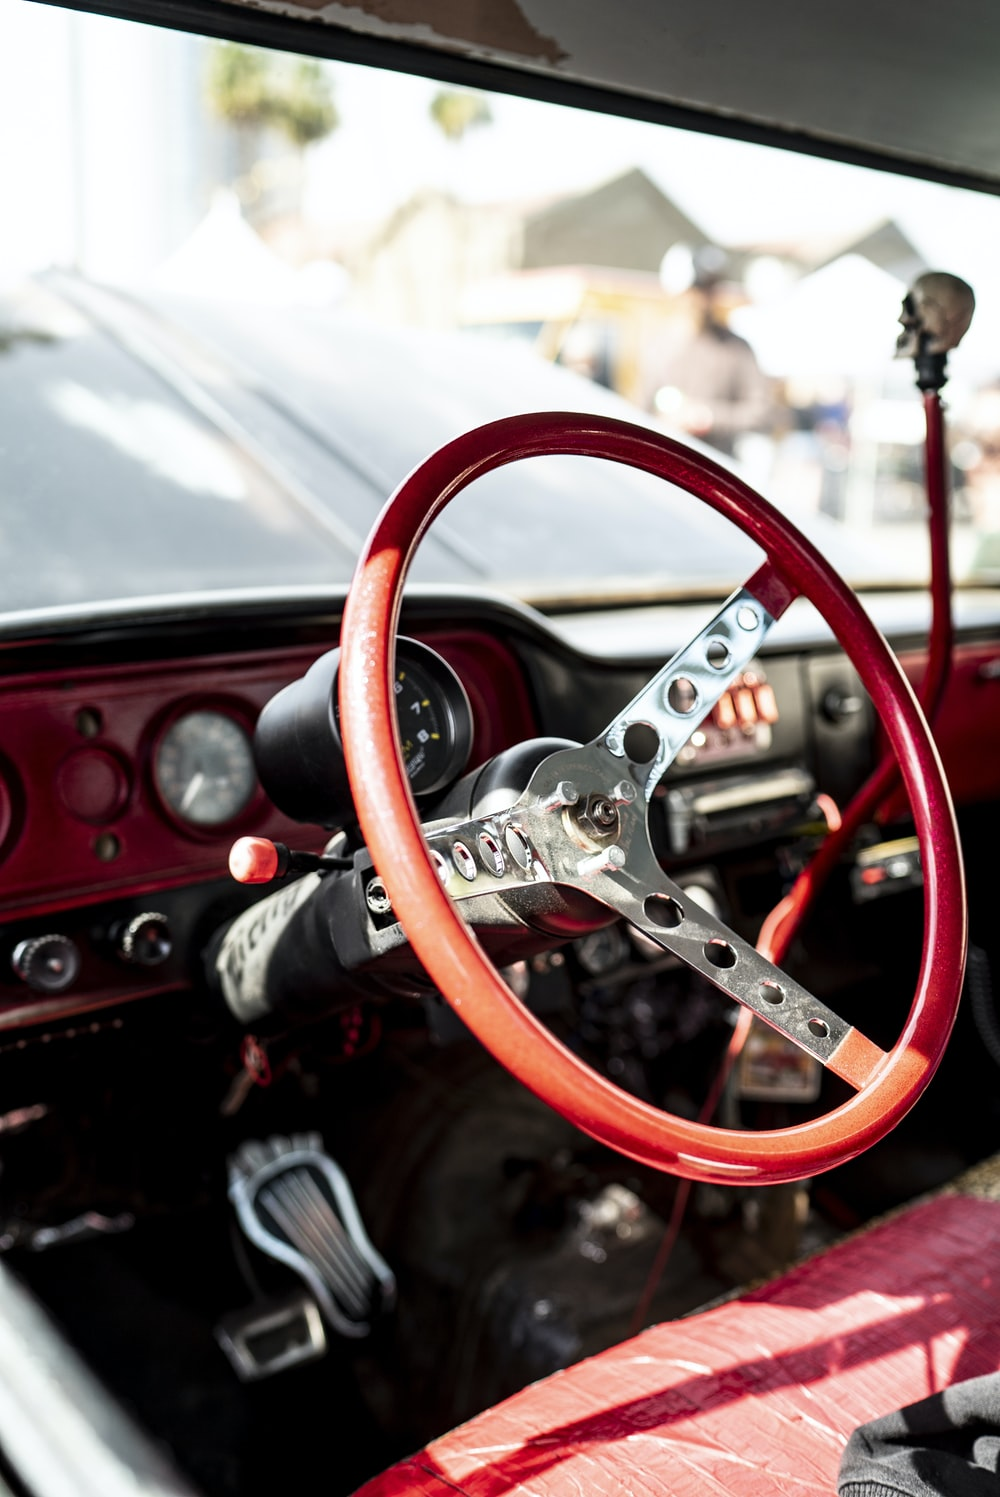 depth of field photography of red vehicle steering wheel